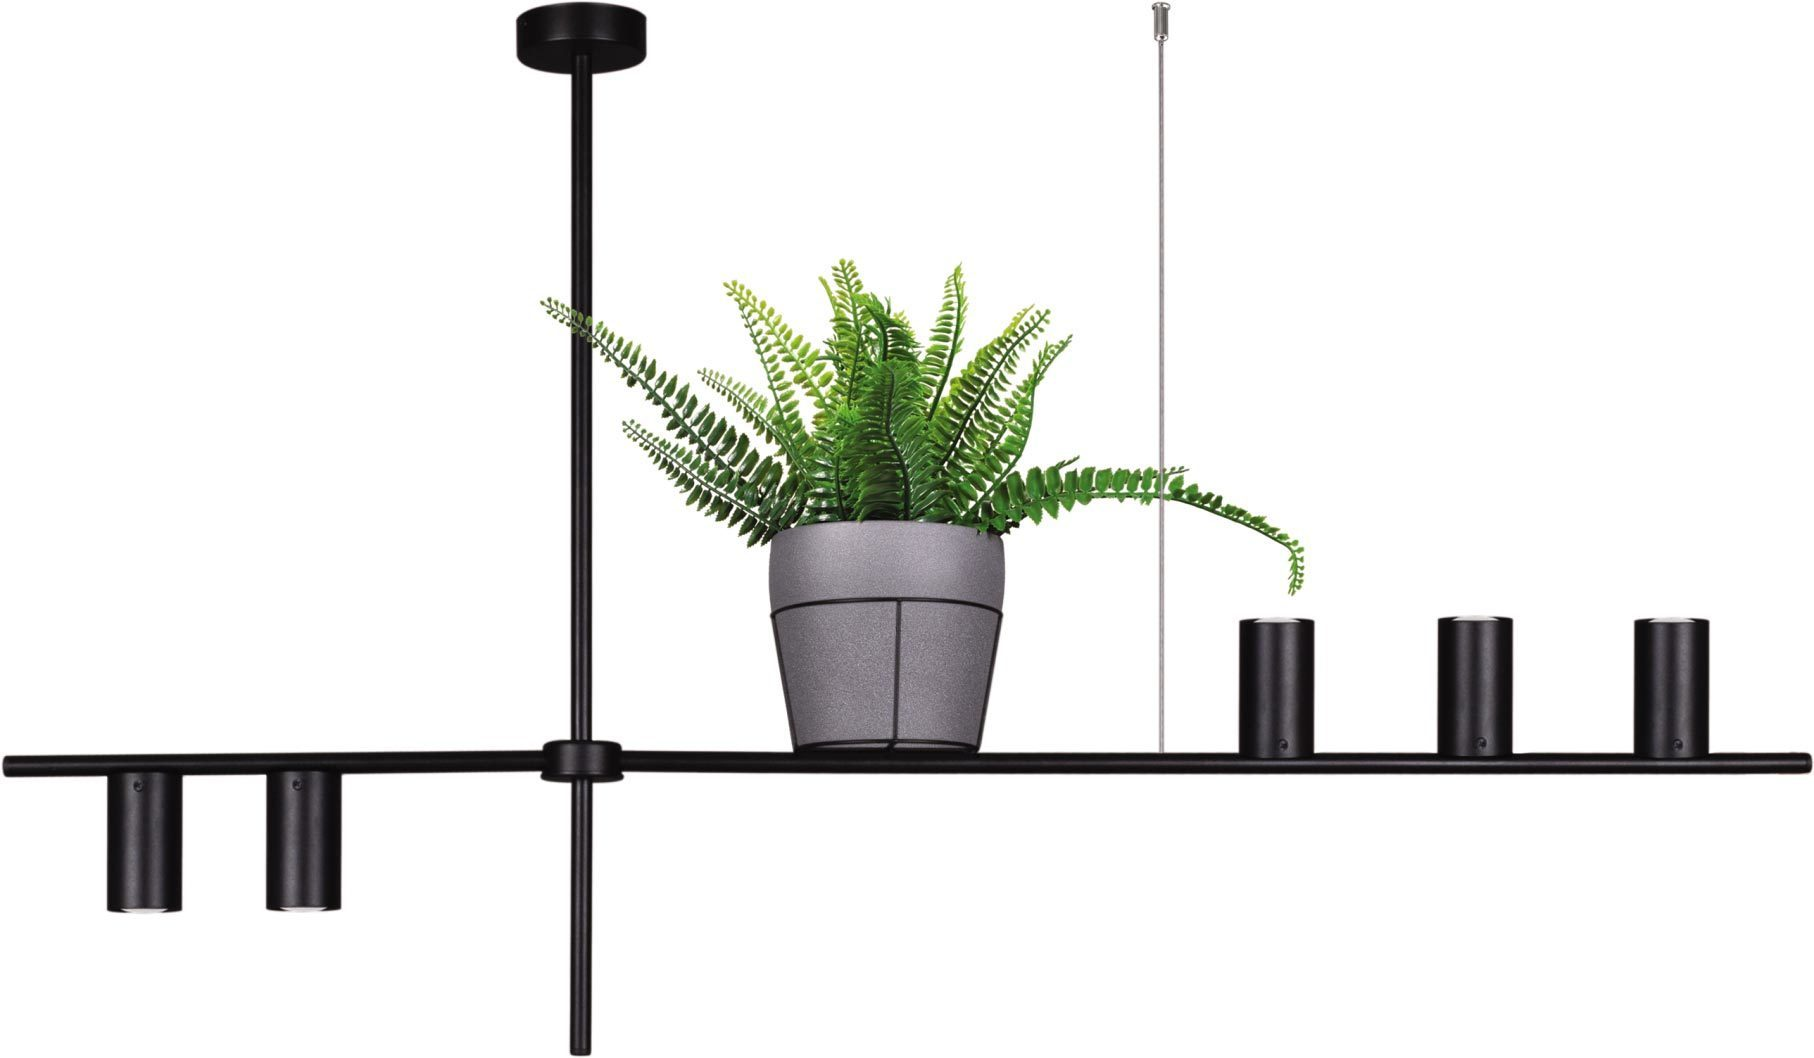 Hanging lamp K-4756 with a flowerbed from the ROCCO series